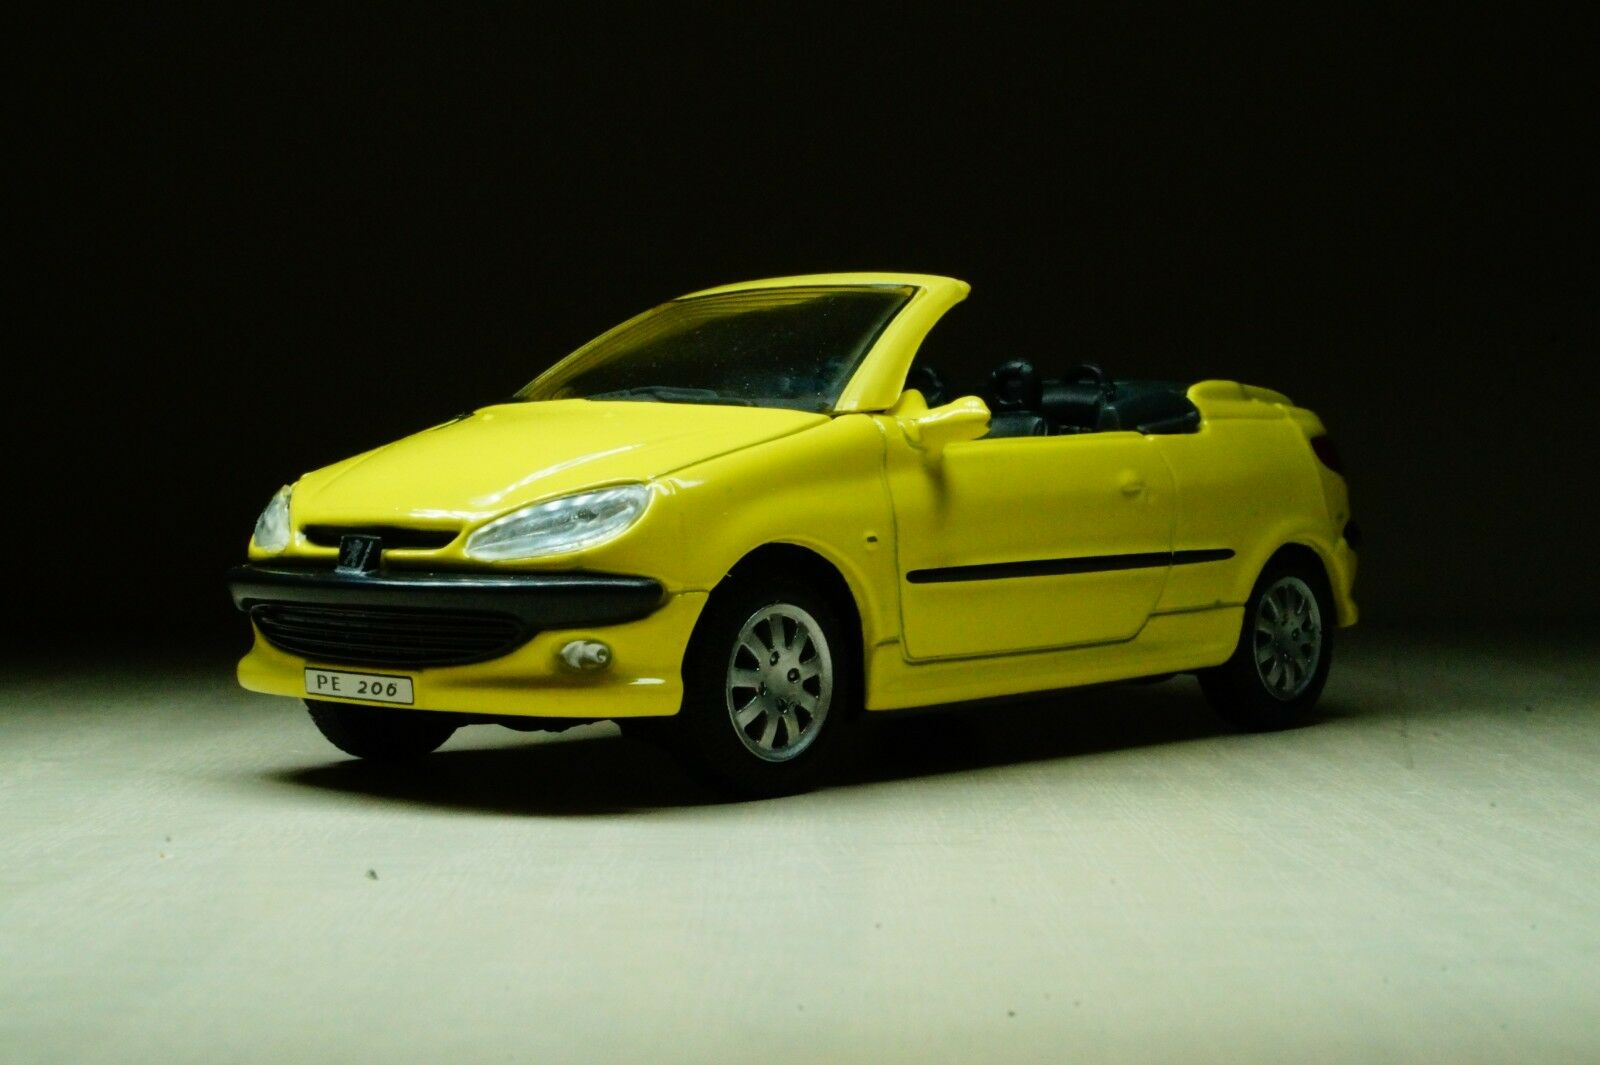 PEUGEOT 206 CC COUPE diecast model car IXO ALTAYA 1//43